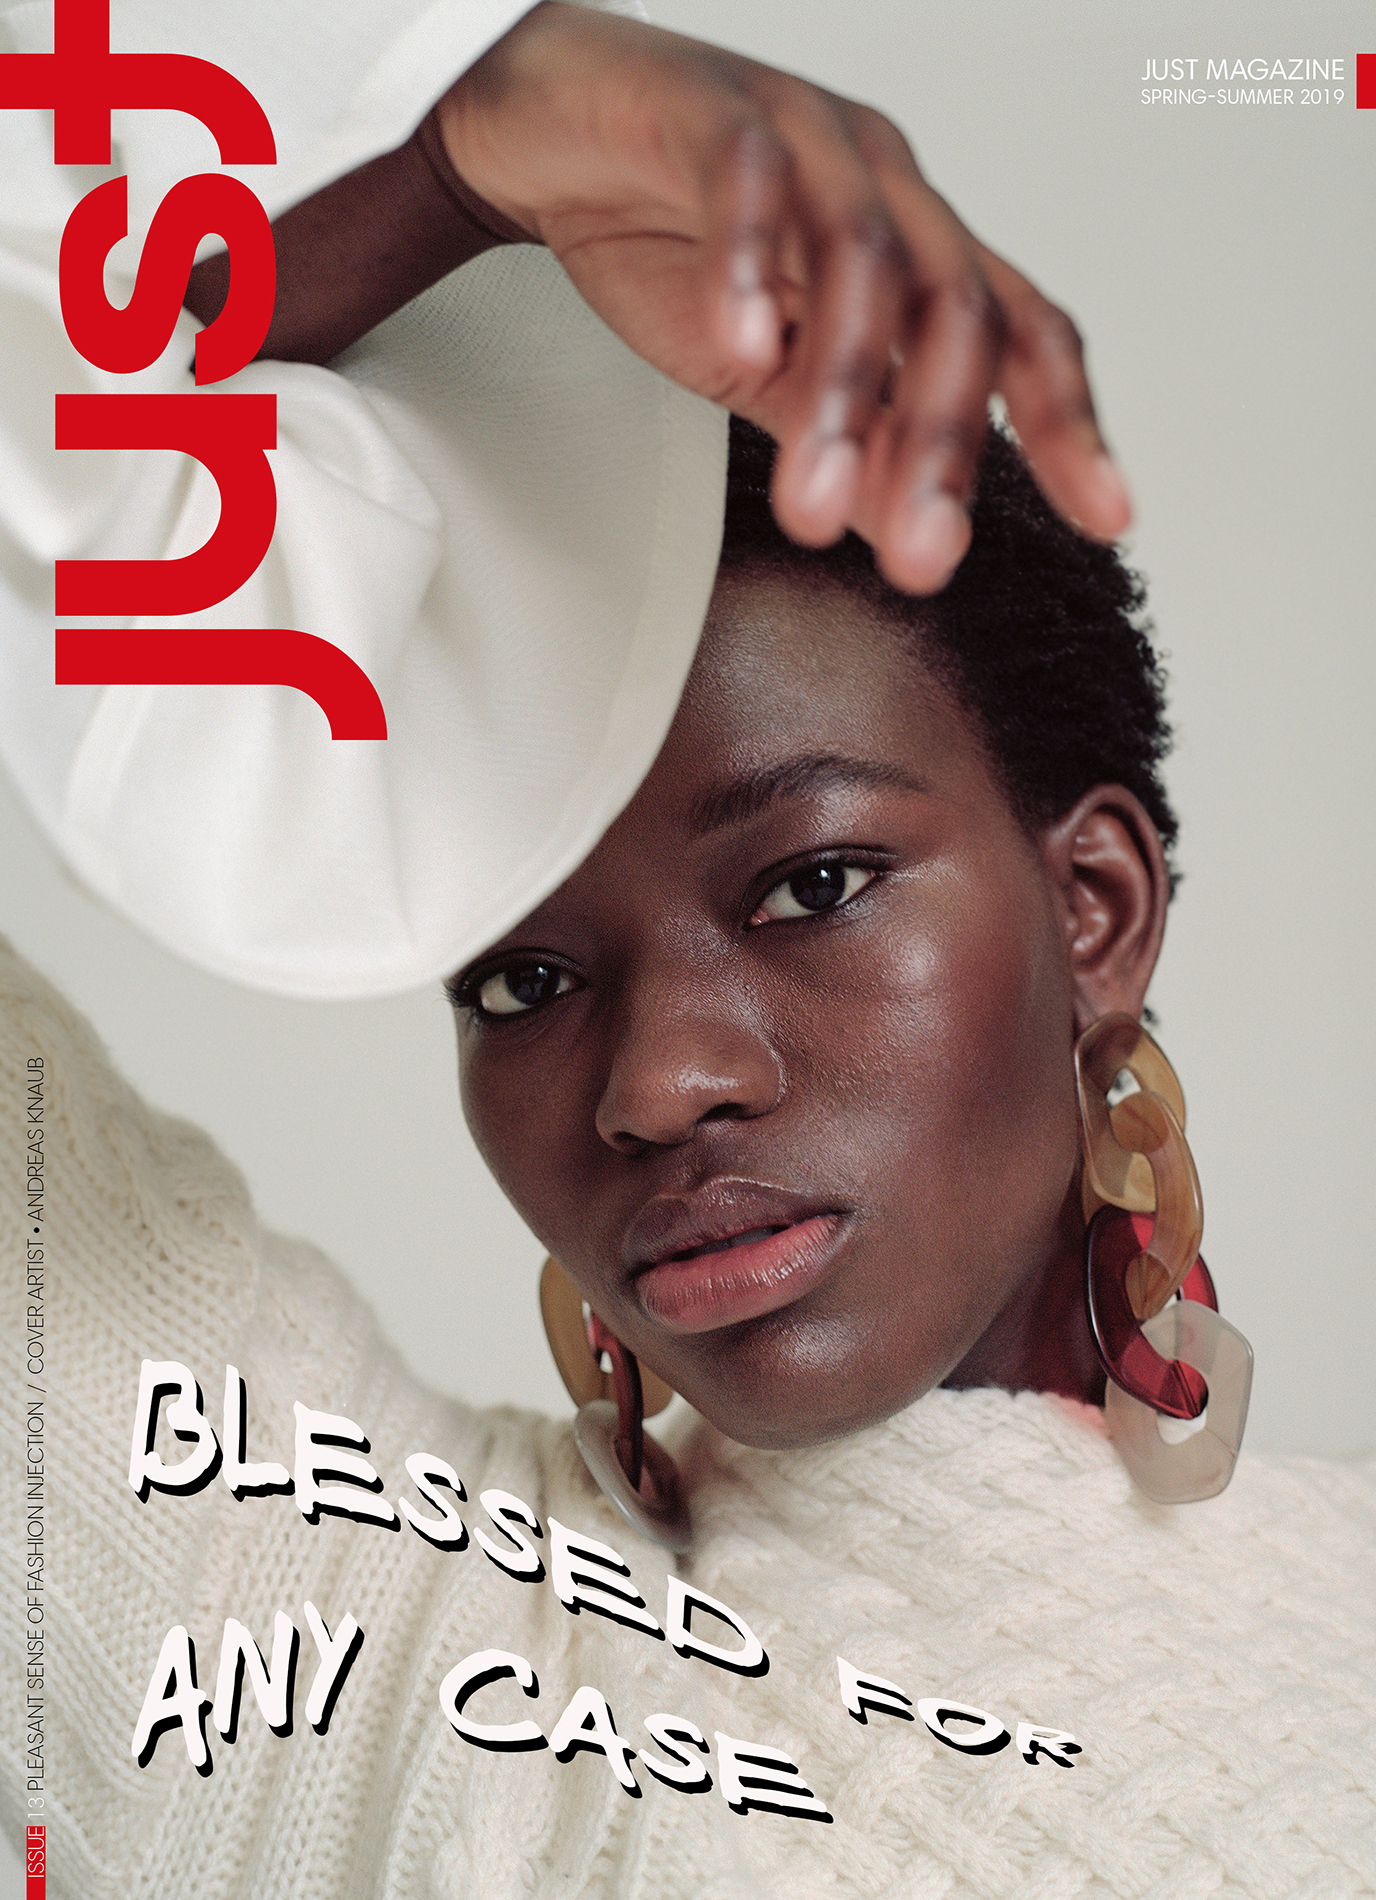 Our 13 issue is out!    Welcome to Just Magazine Spring-Summer 2019